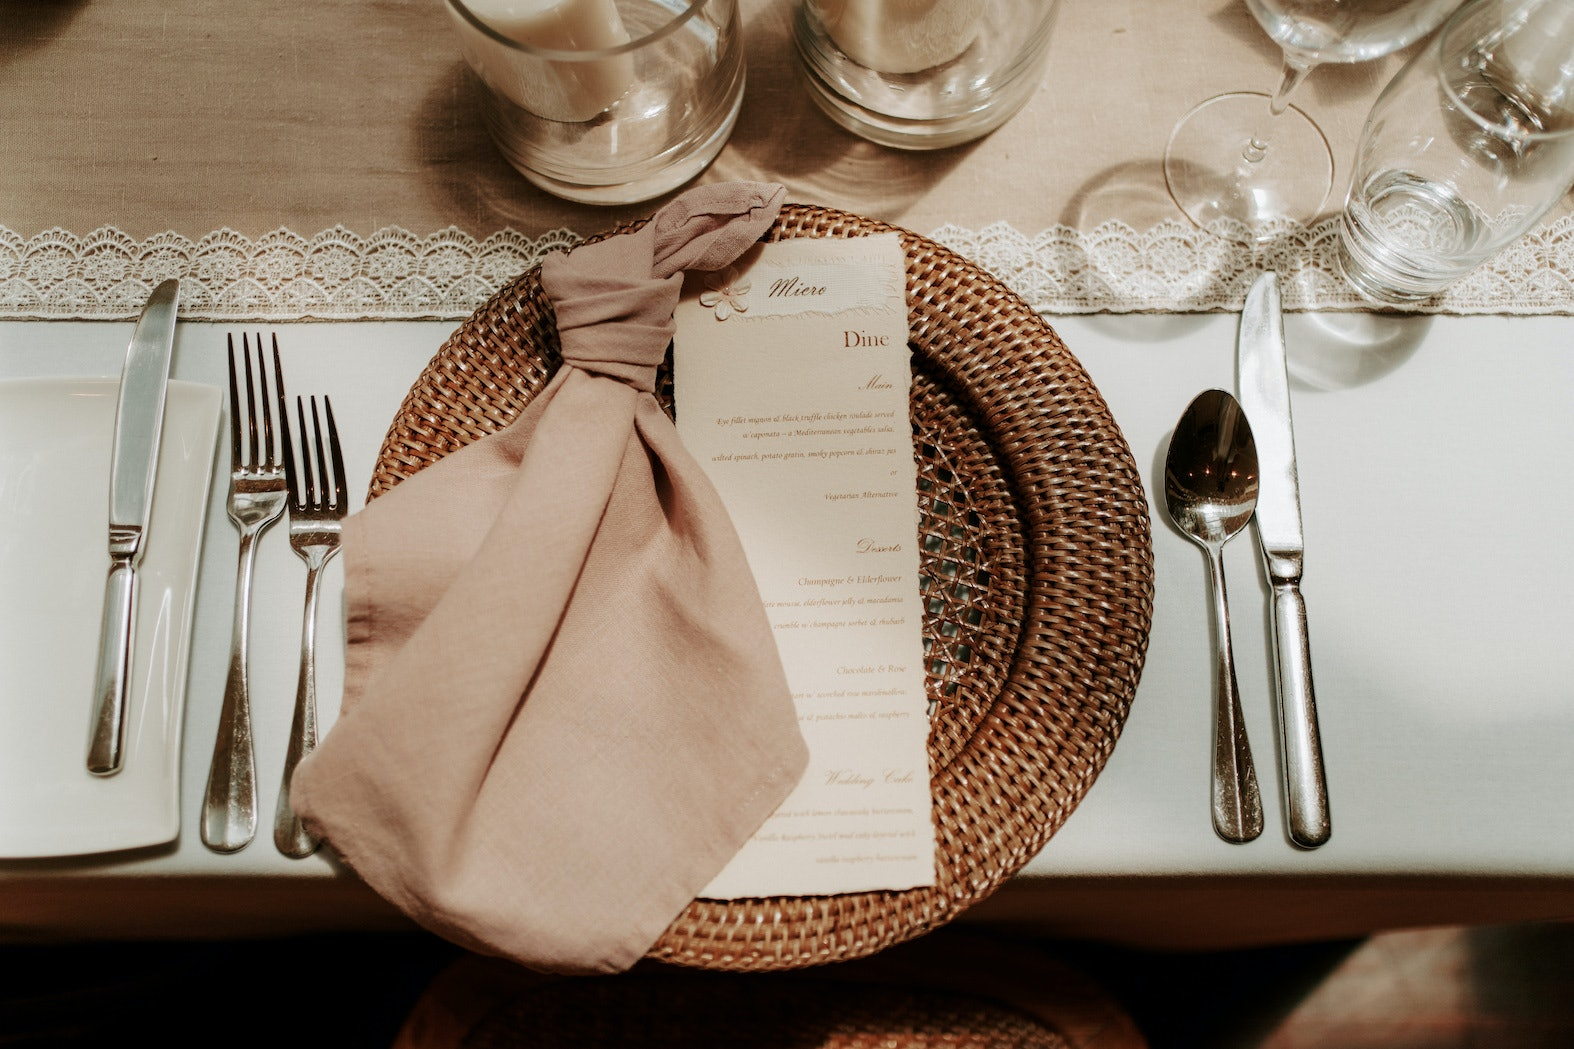 Tables setting with rattan plates, linen and namecards